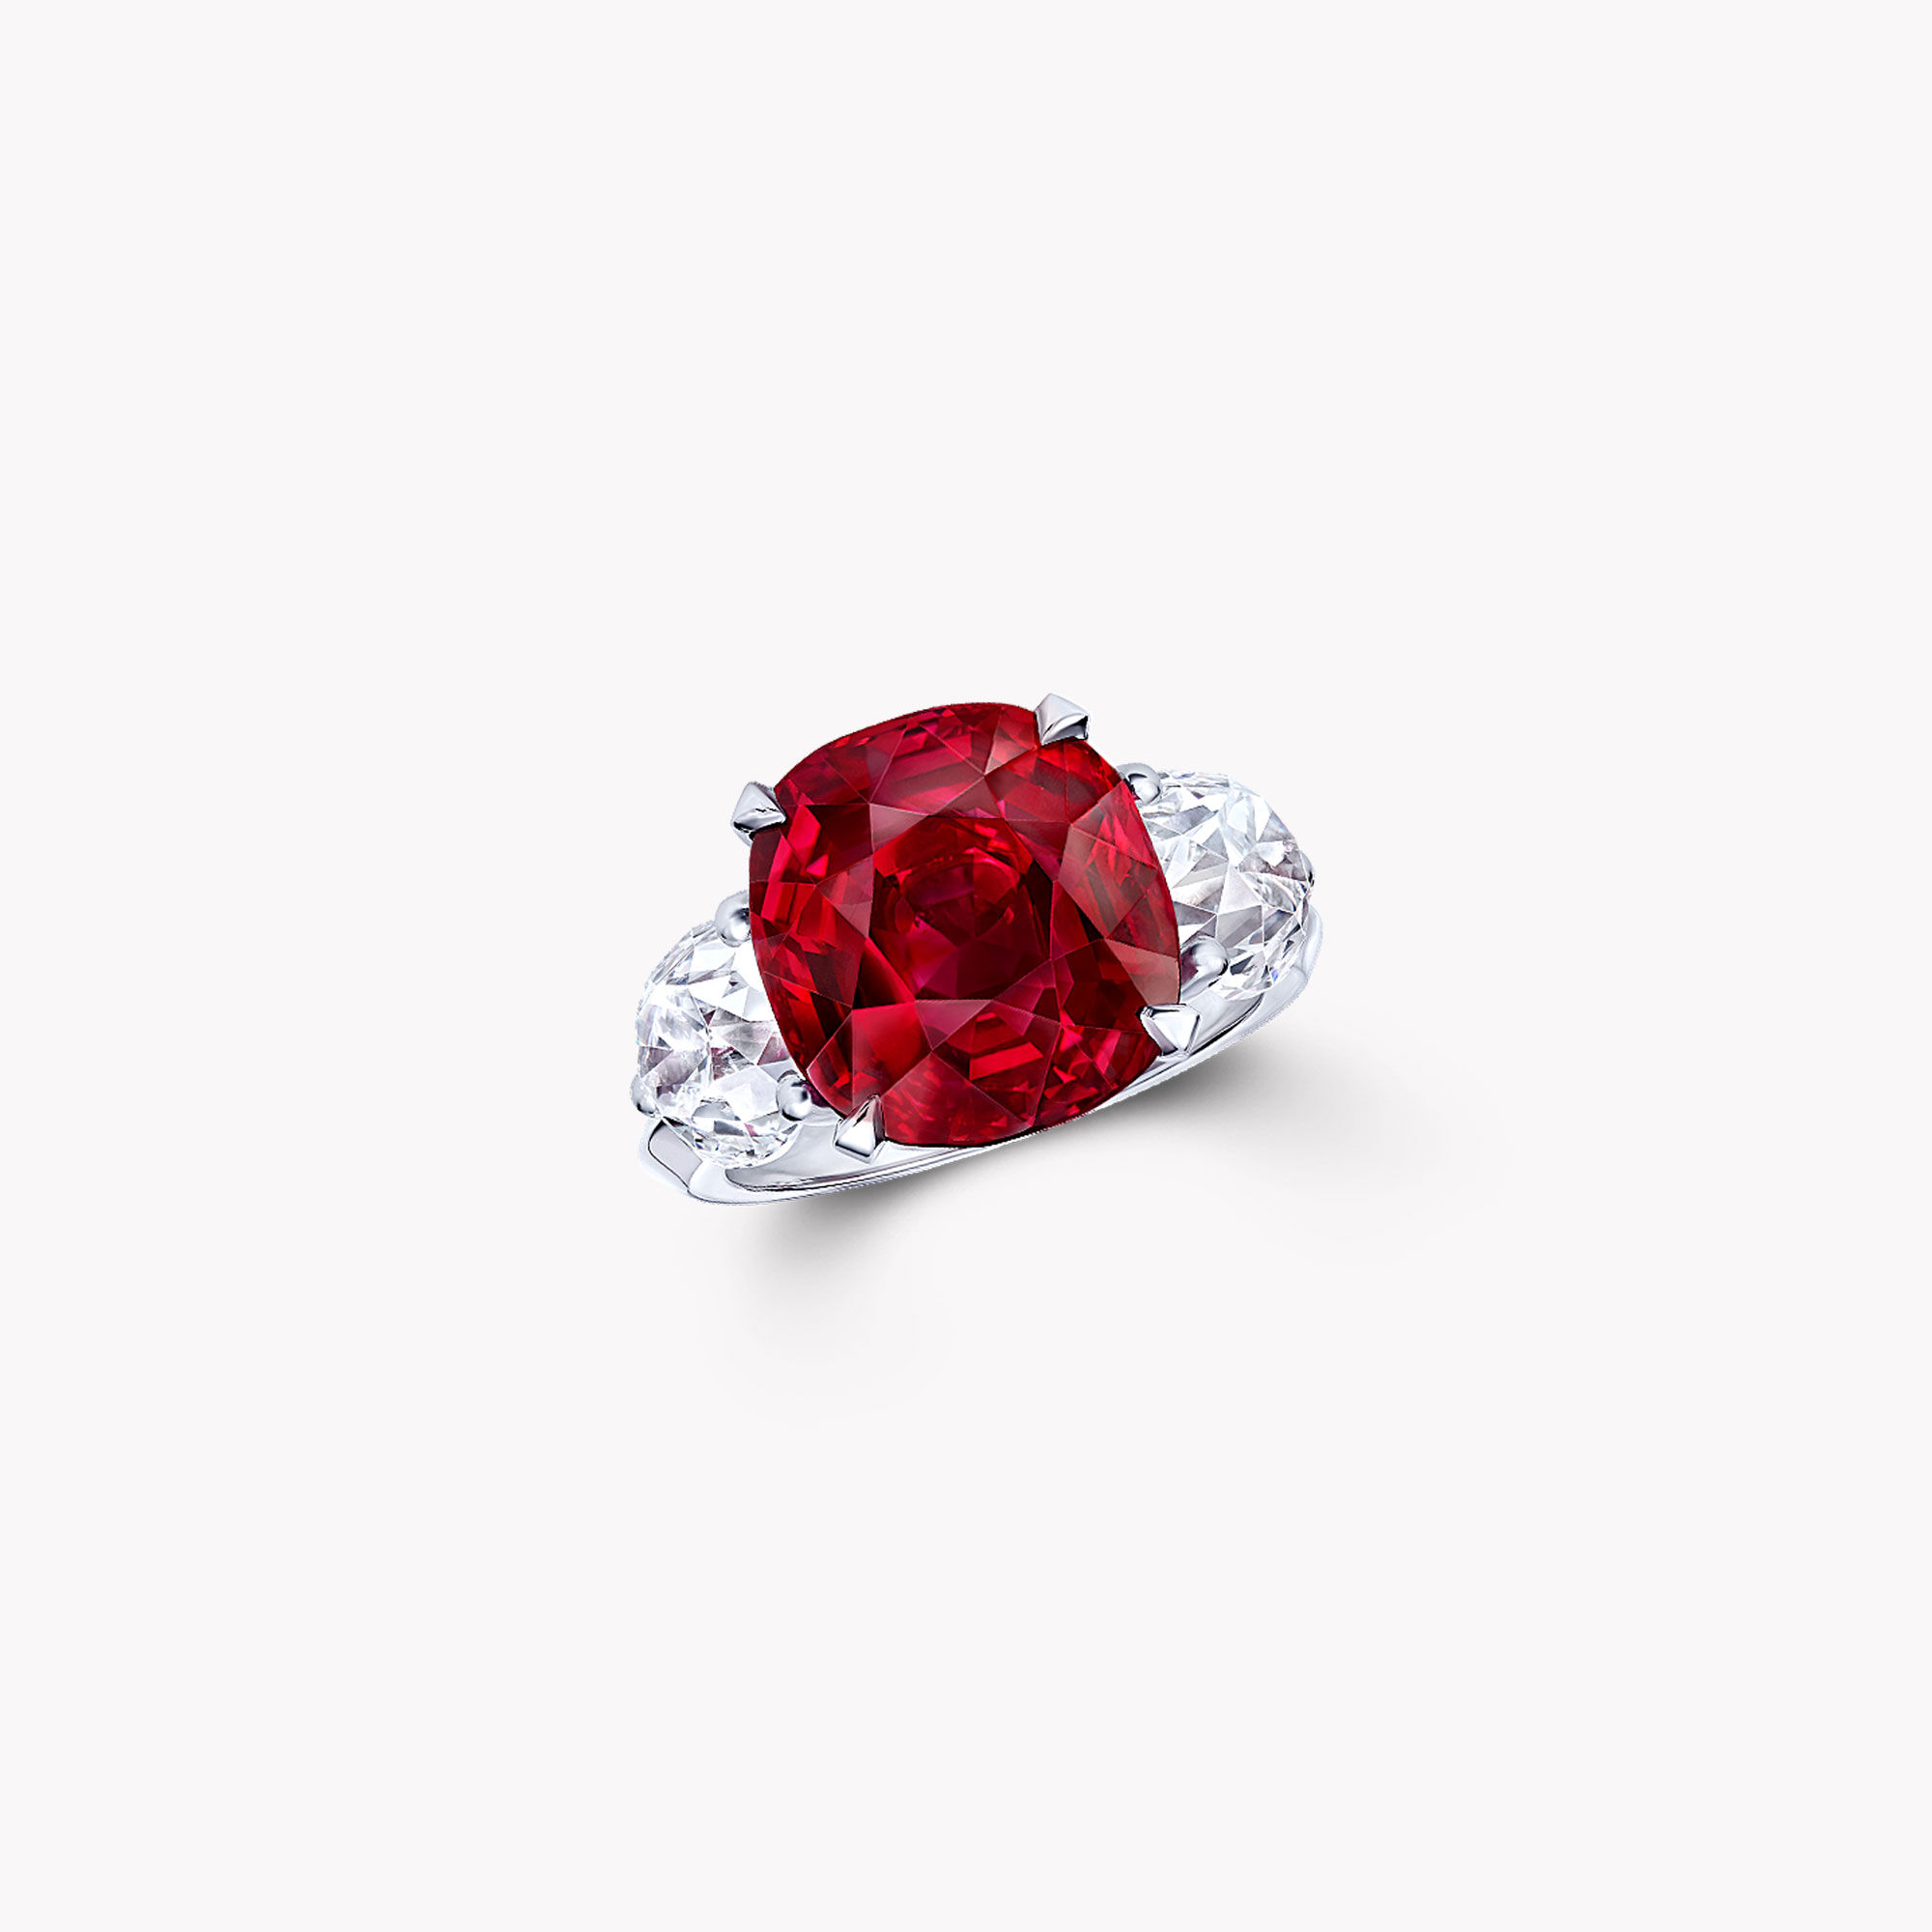 Unique ruby and diamond Solitaire ring from the Graff high jewellery collection